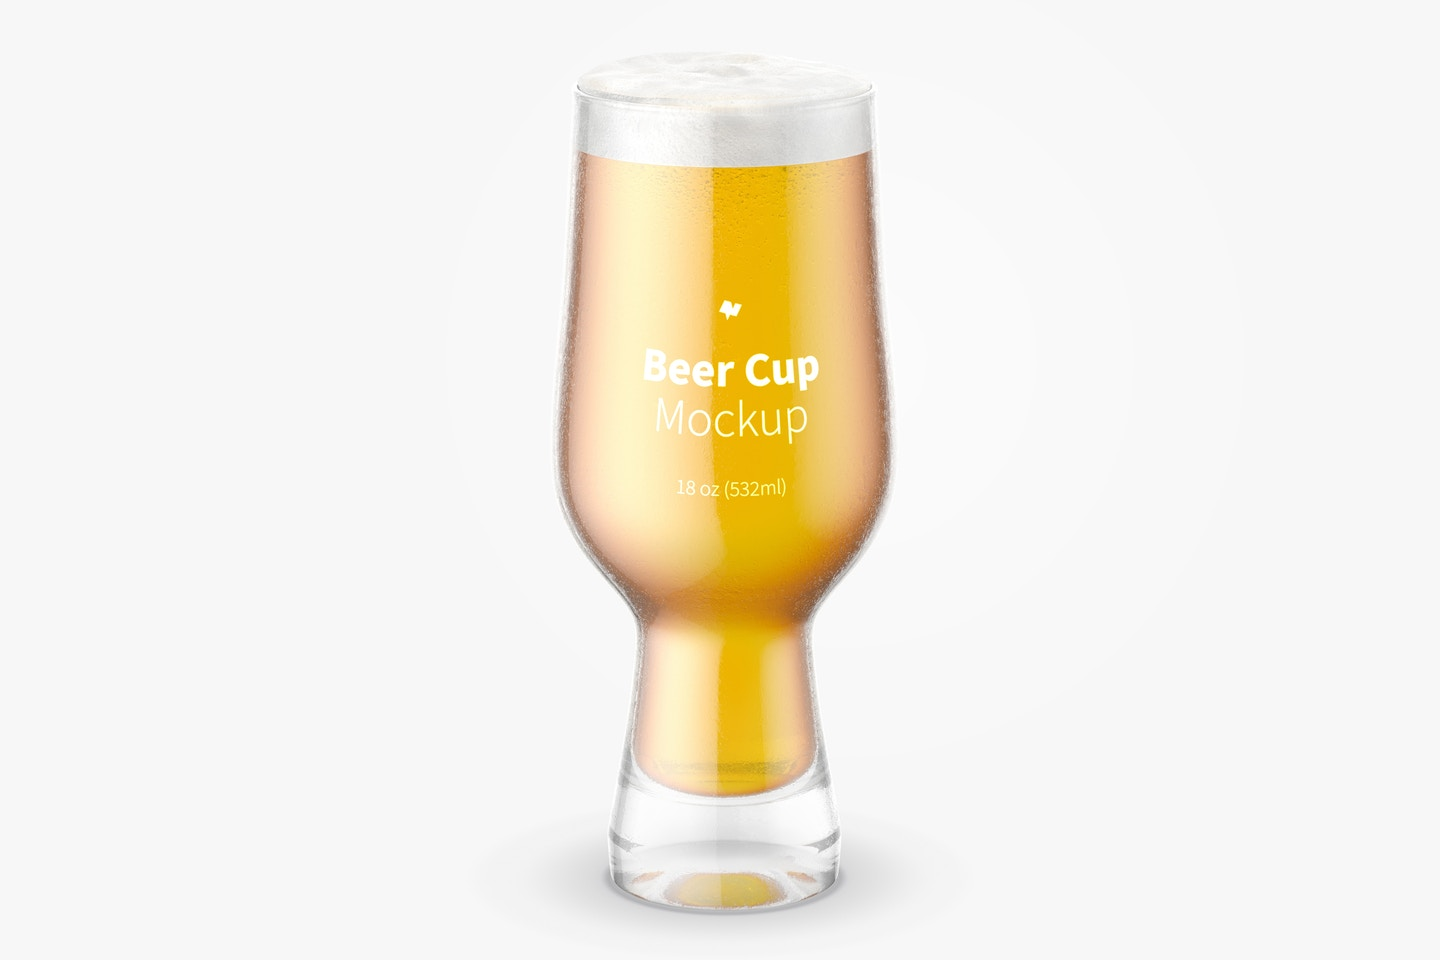 18 oz Glass Beer Cup Mockup, Front View